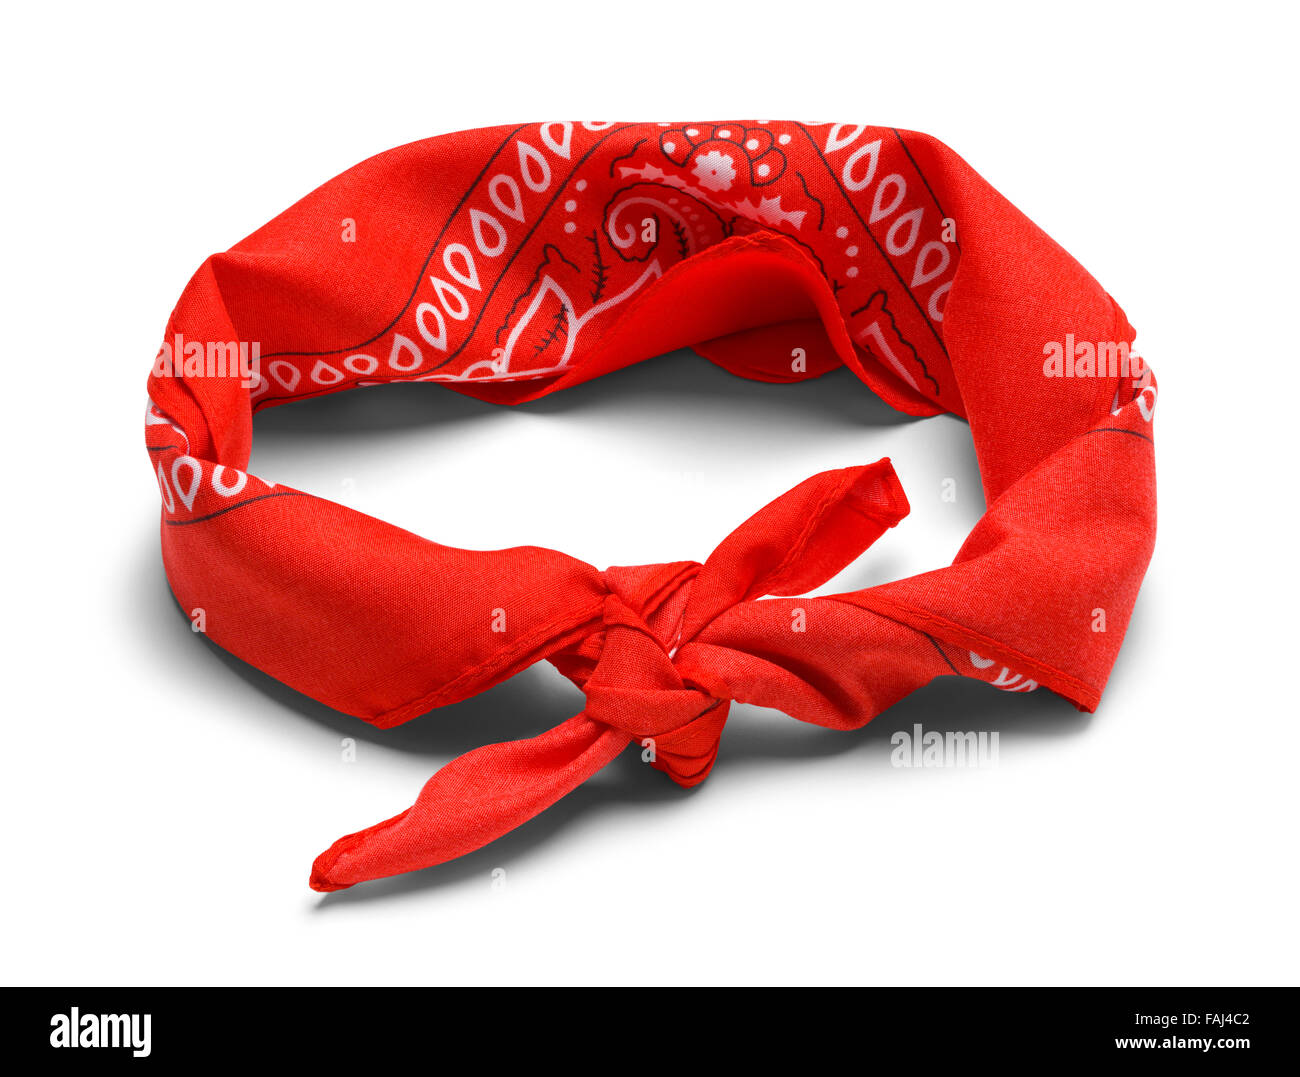 Red Handkerchief Headband Isolated on a White Background. - Stock Image